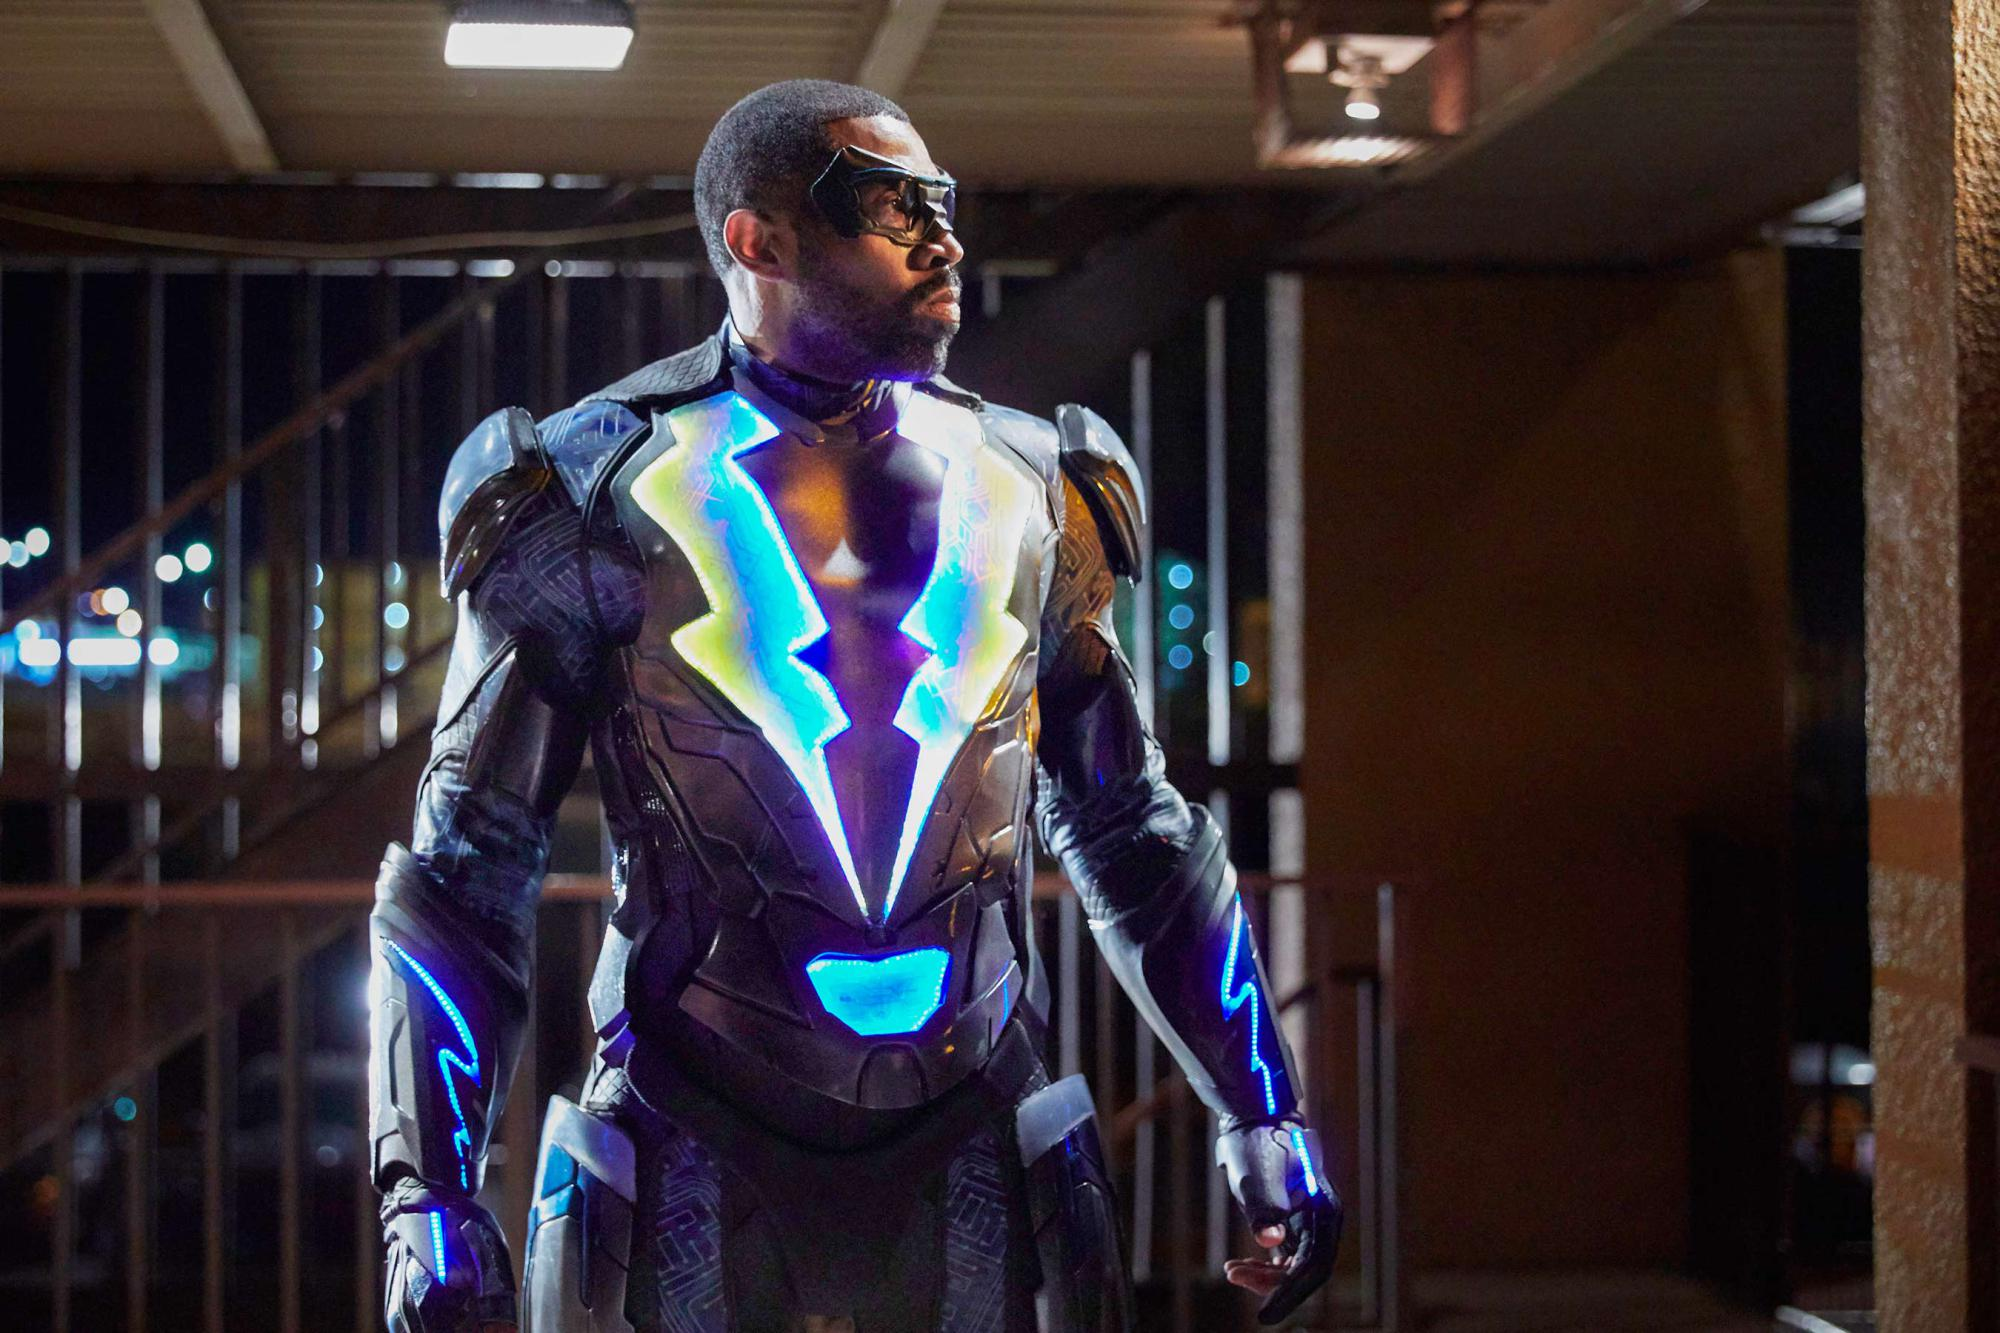 black lightning Every Show Worth Watching This Winter On Network TV and Basic Cable